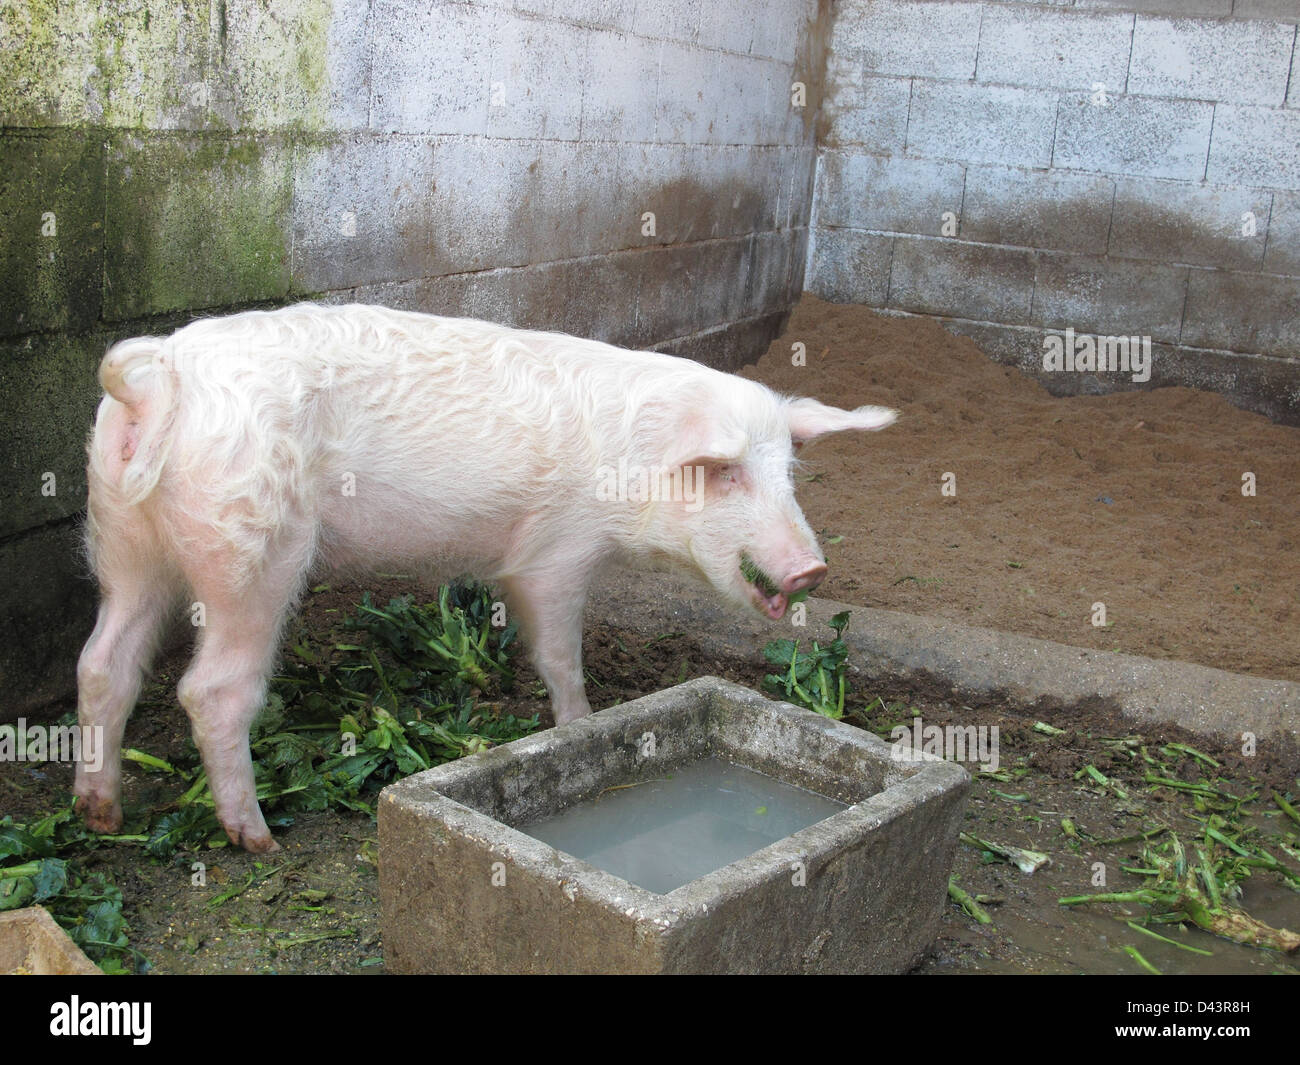 Pig in a stable eating - Stock Image